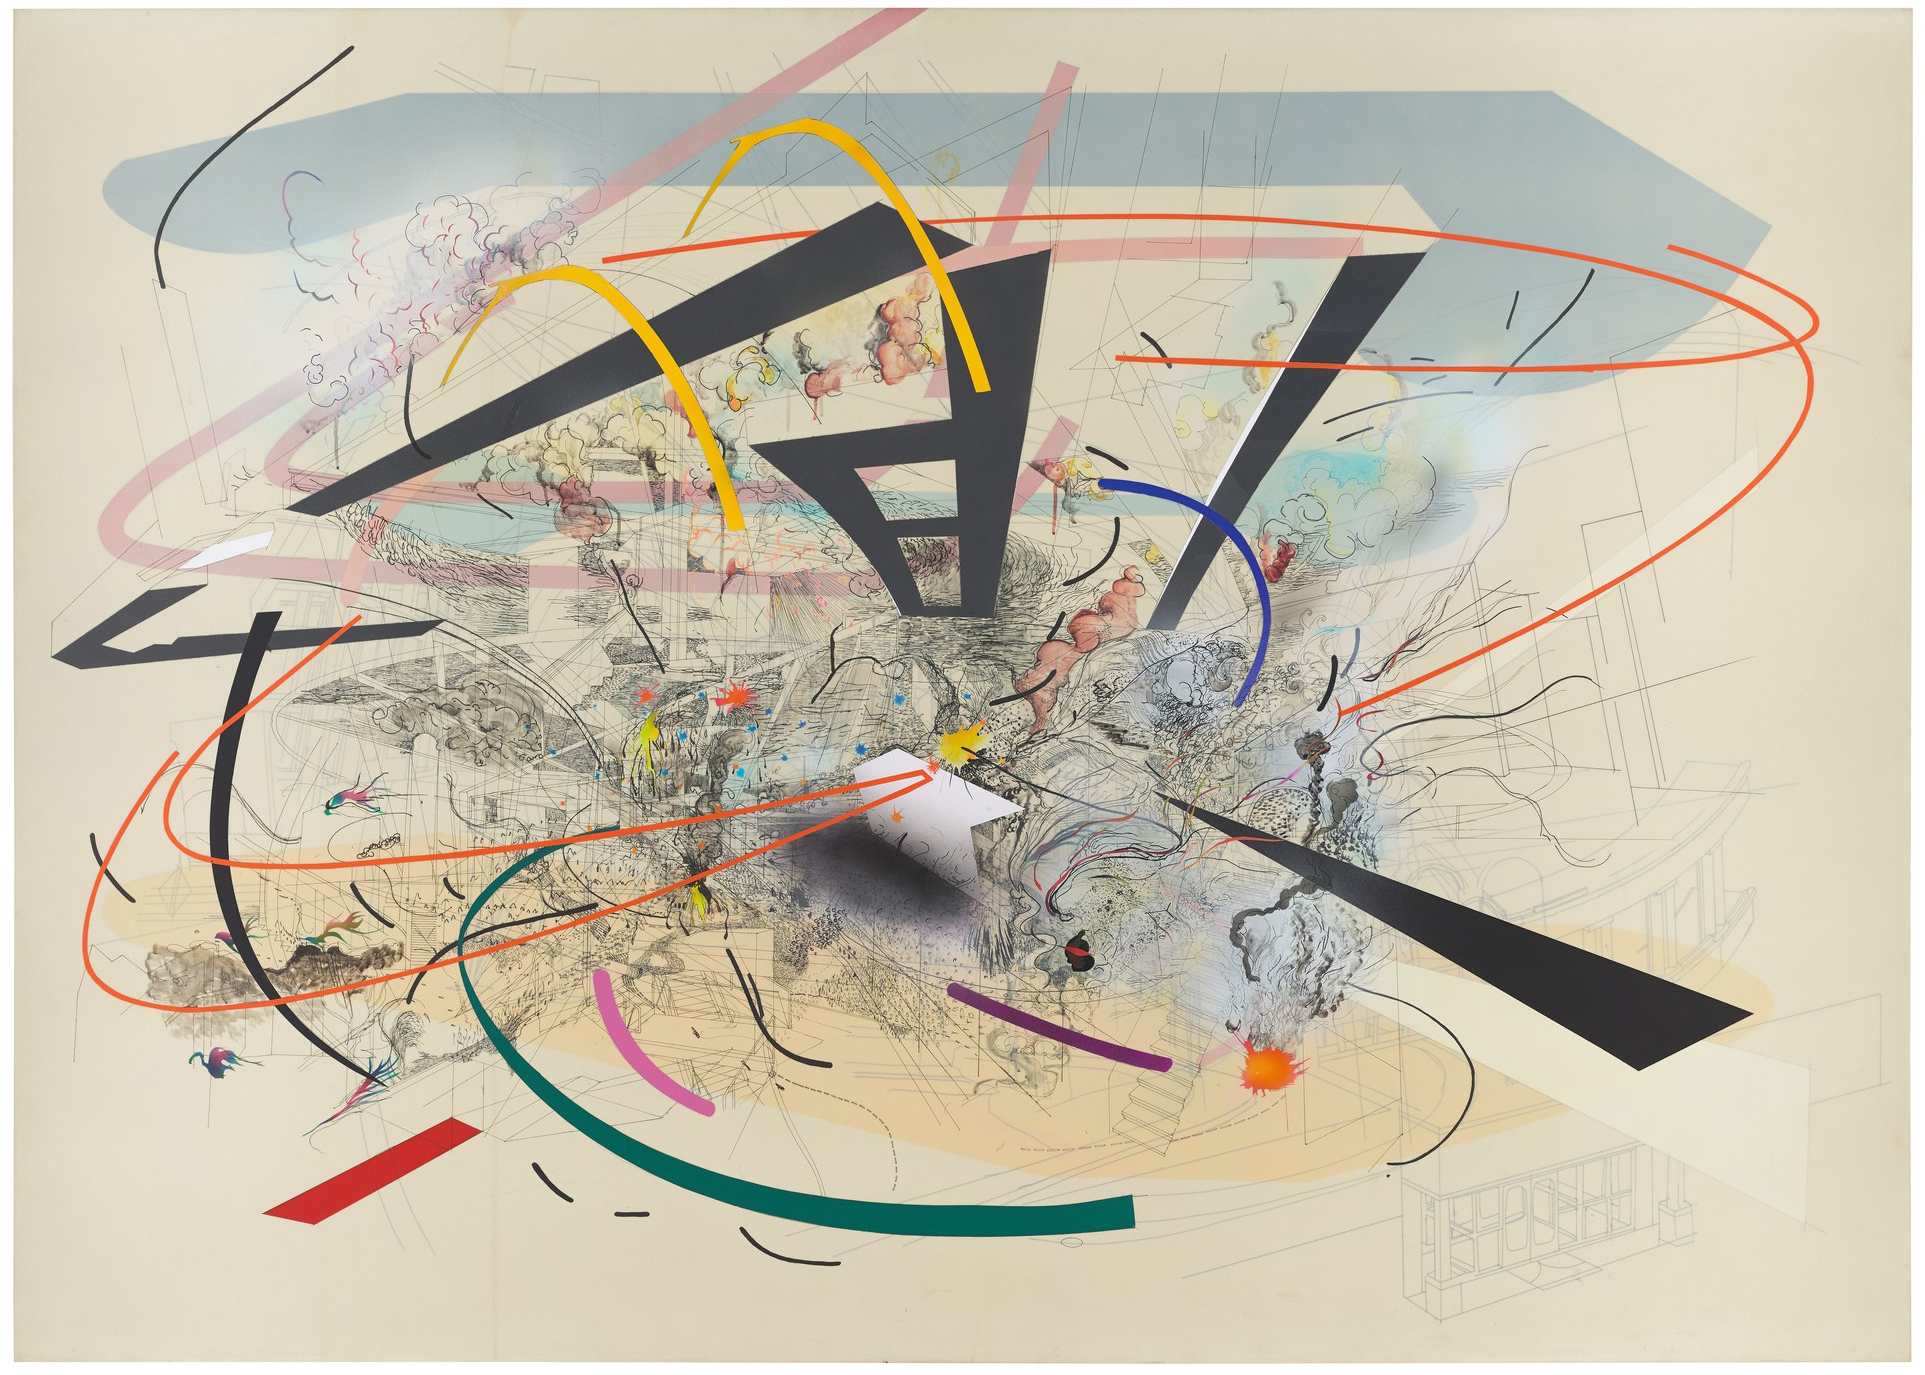 Julie Mehretu, Untitled 2, 2001, private collection, courtesy of Salon 94, New York, © Julie Mehretu, photograph by Tom Powel Imaging